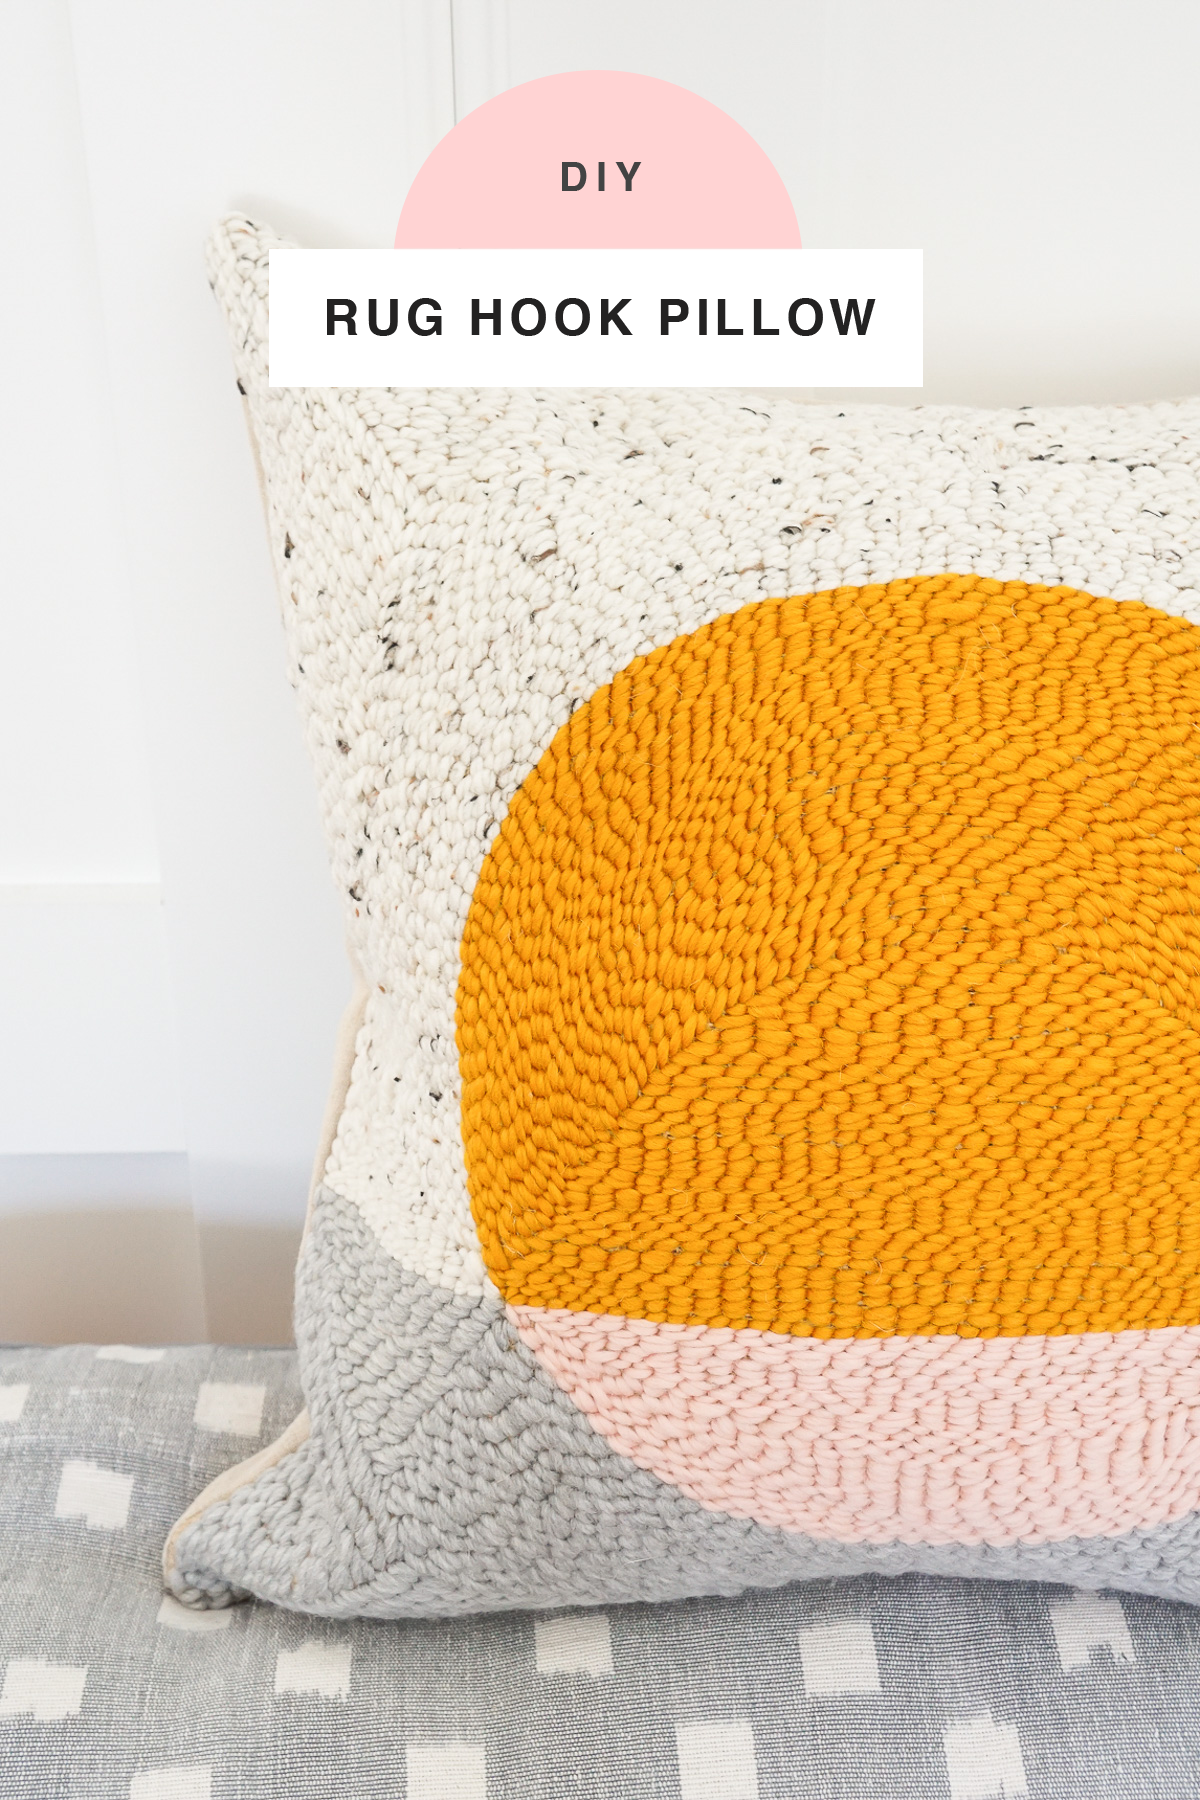 How To Make A Pillow By Rug Hooking Diy Home More